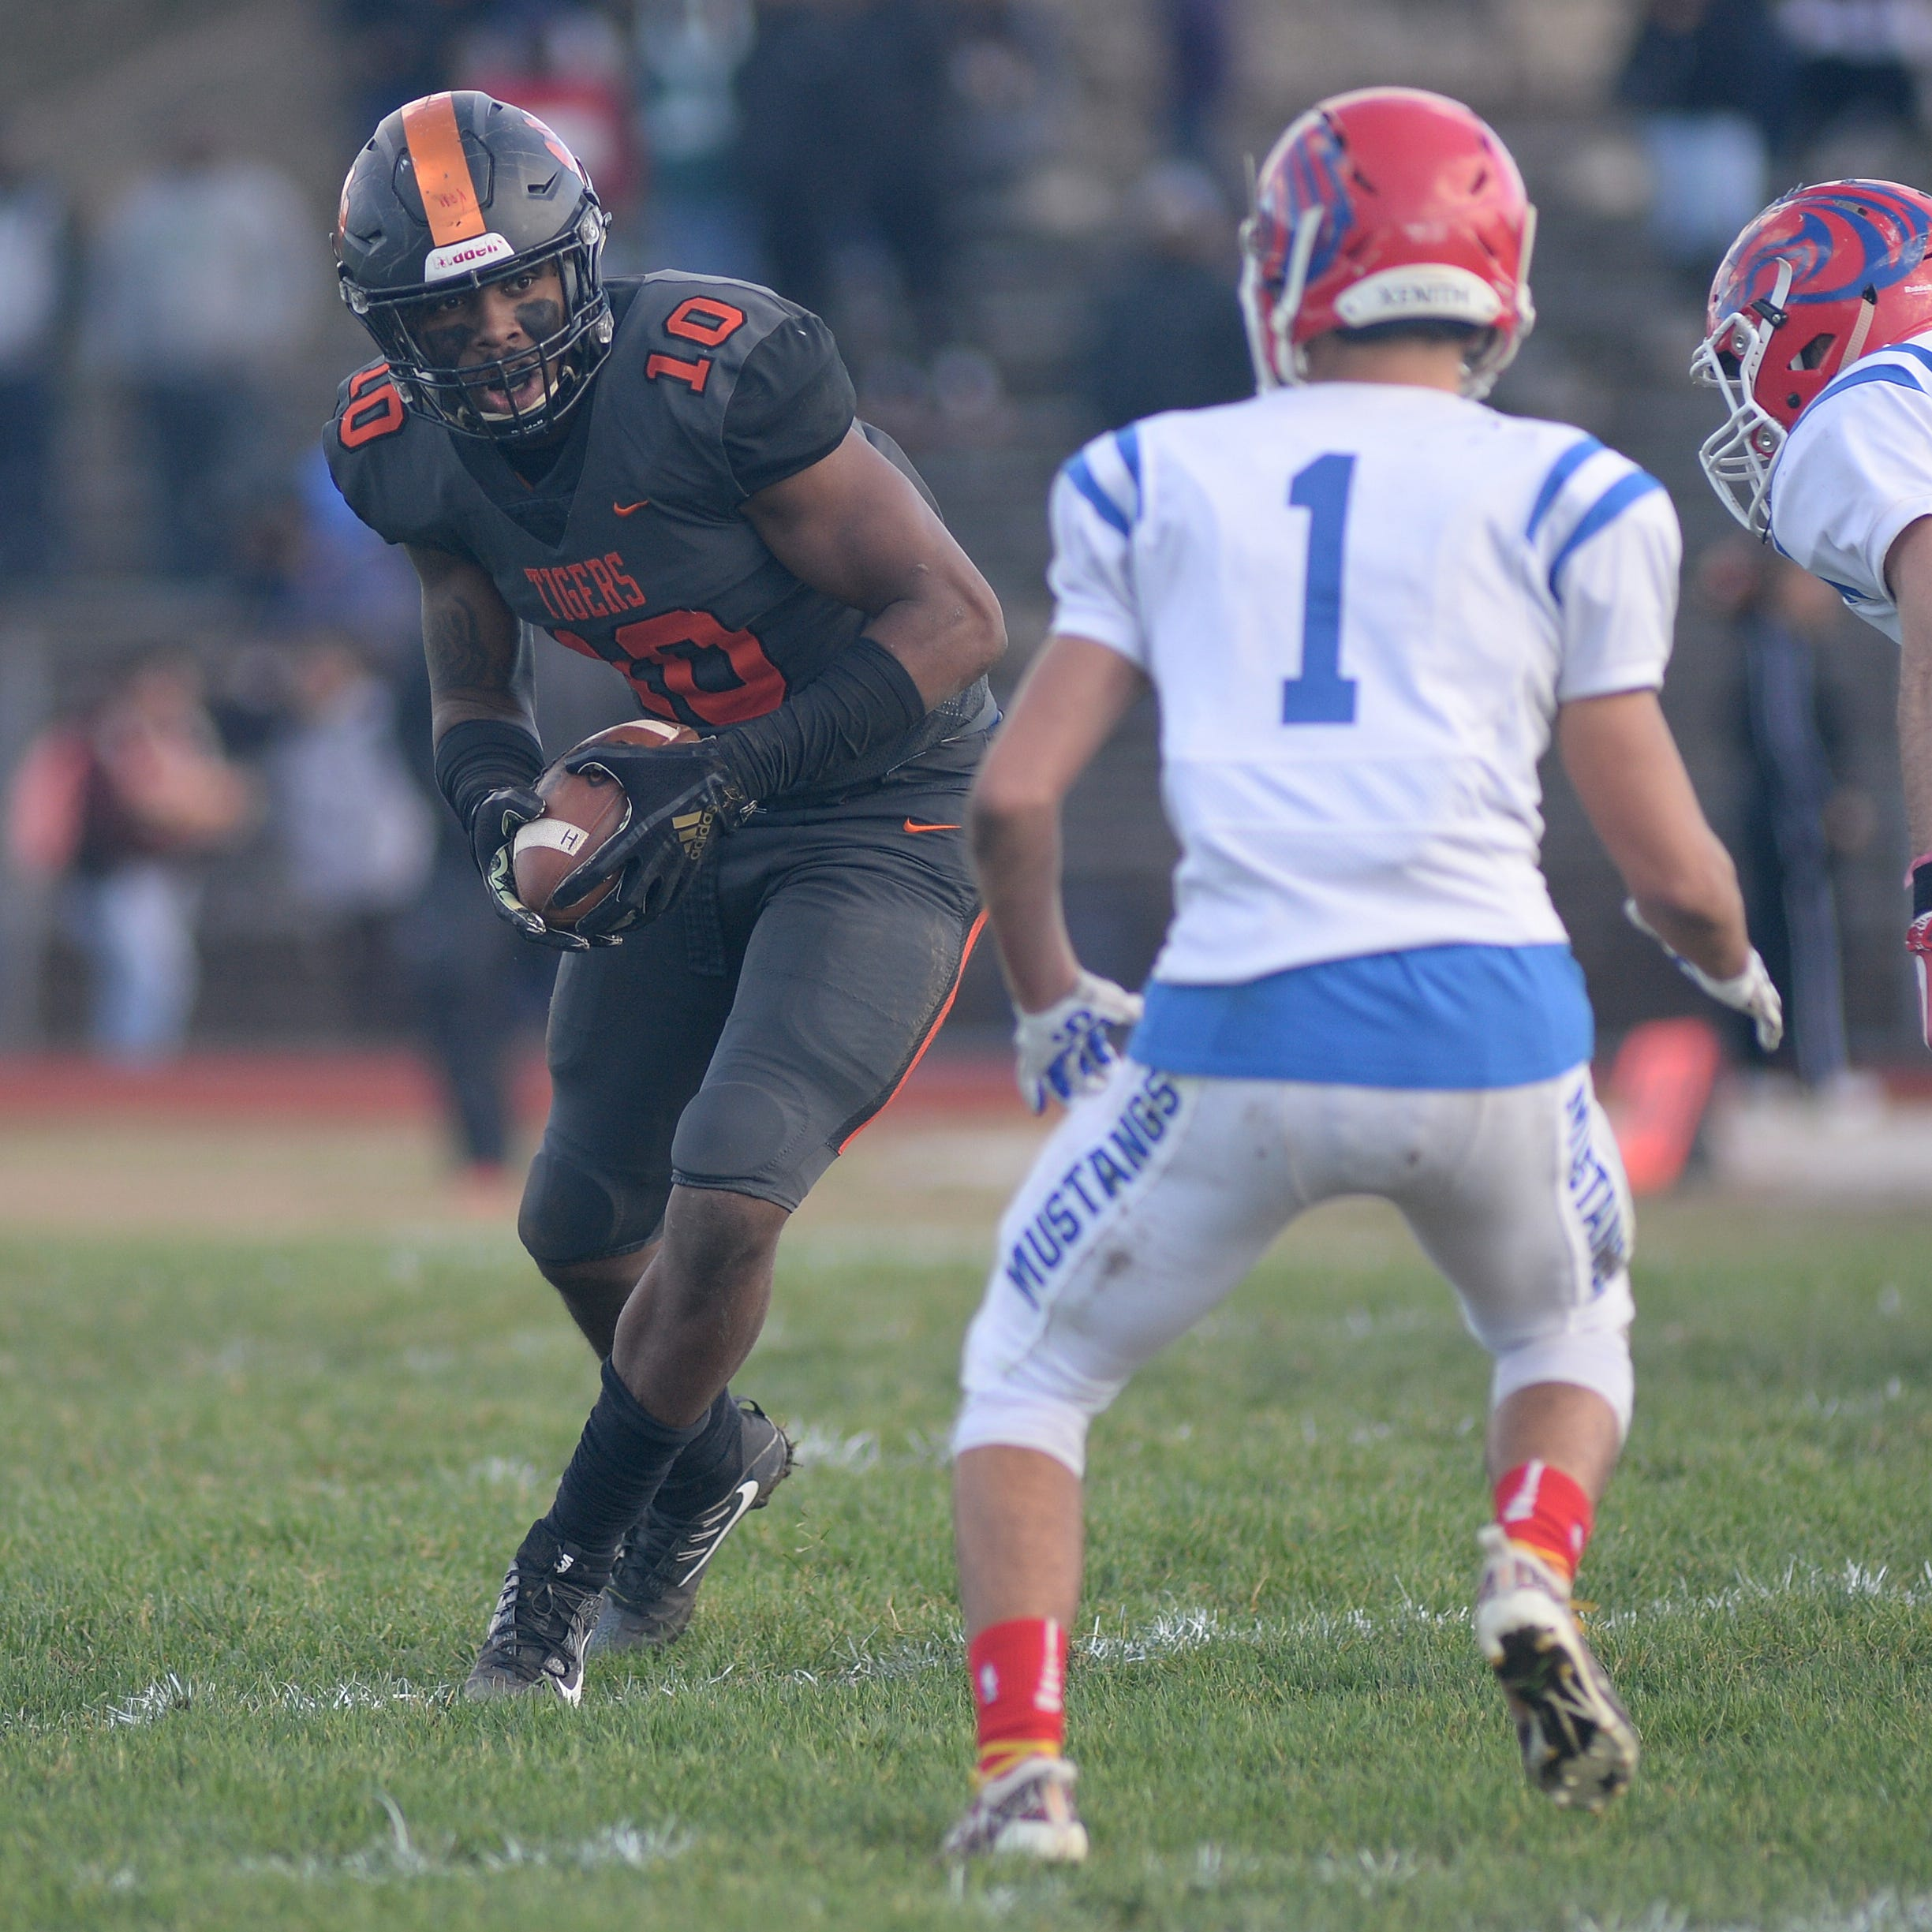 South Jersey football: Woodrow Wilson standout Fadil Diggs commits to Texas A&M